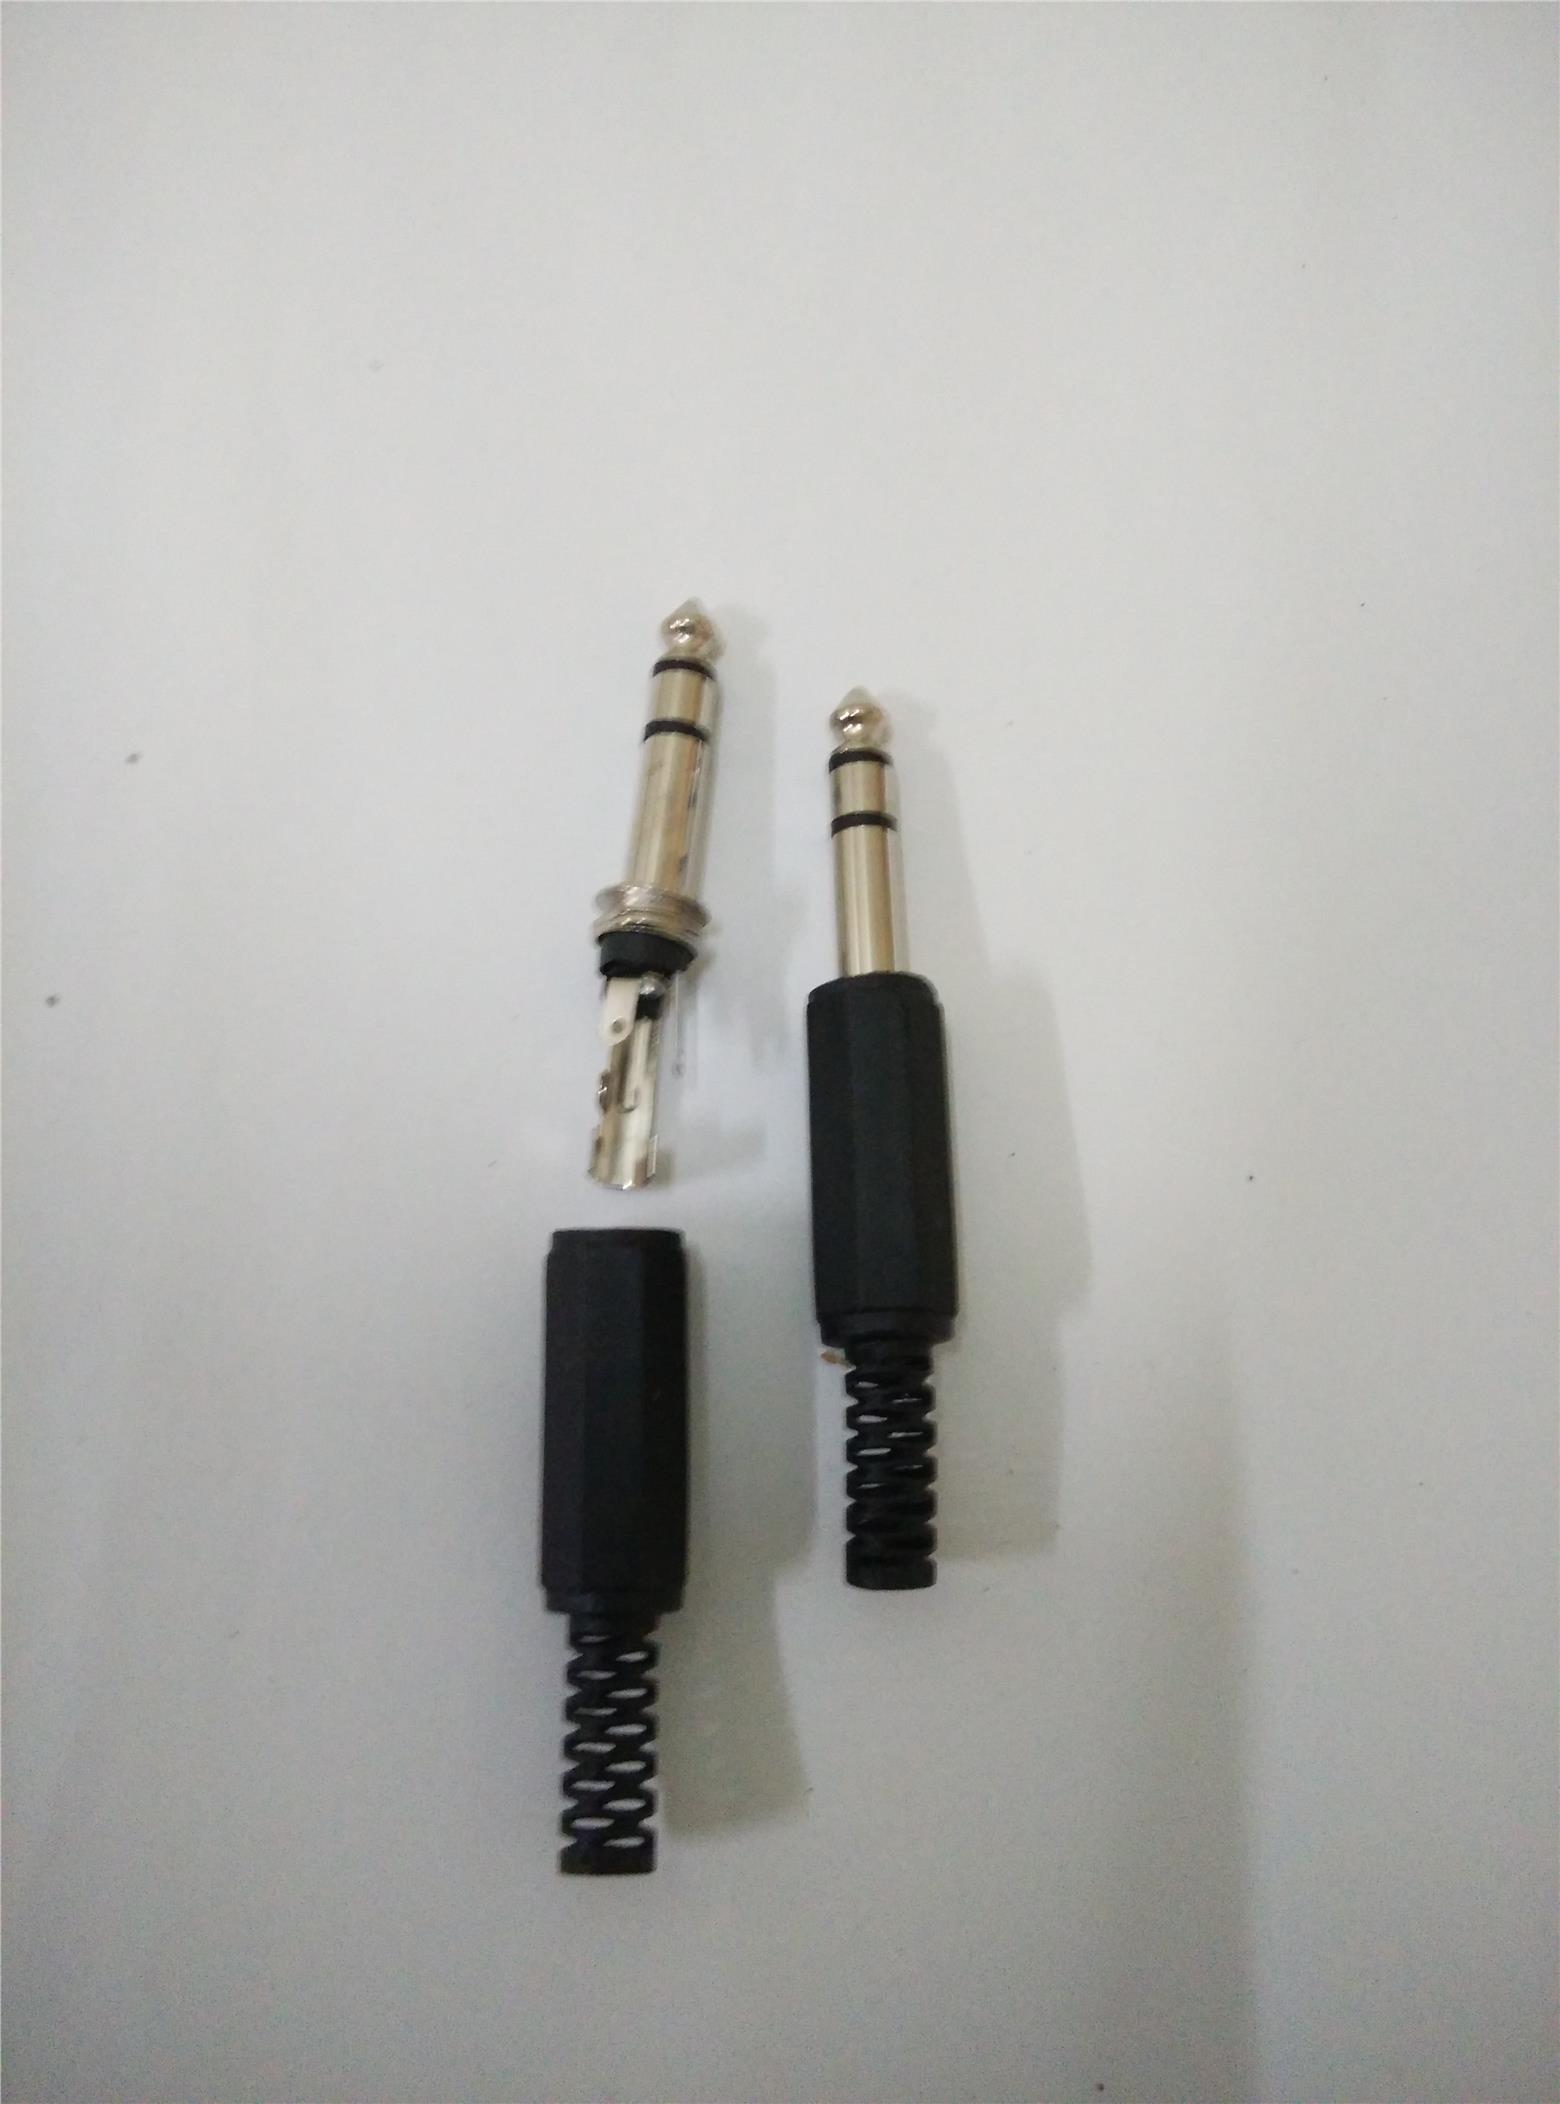 Stereo 6.3mm Phone Jack - 3 pin